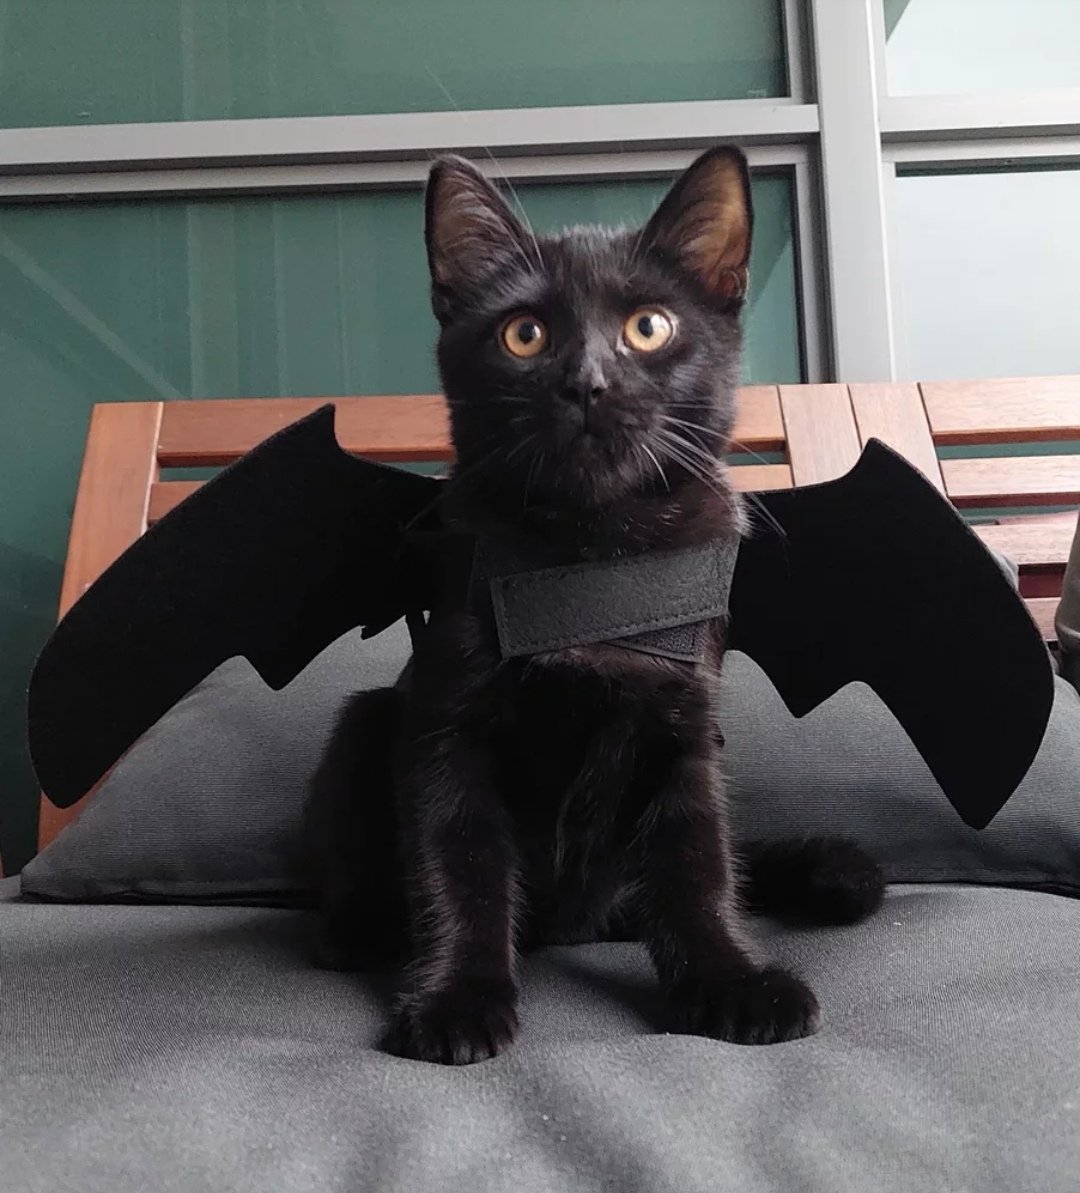 He may be the night but I am the day. CatBat! (Halloween in 9 days 🦇🎃👻)  #FreakyFriday